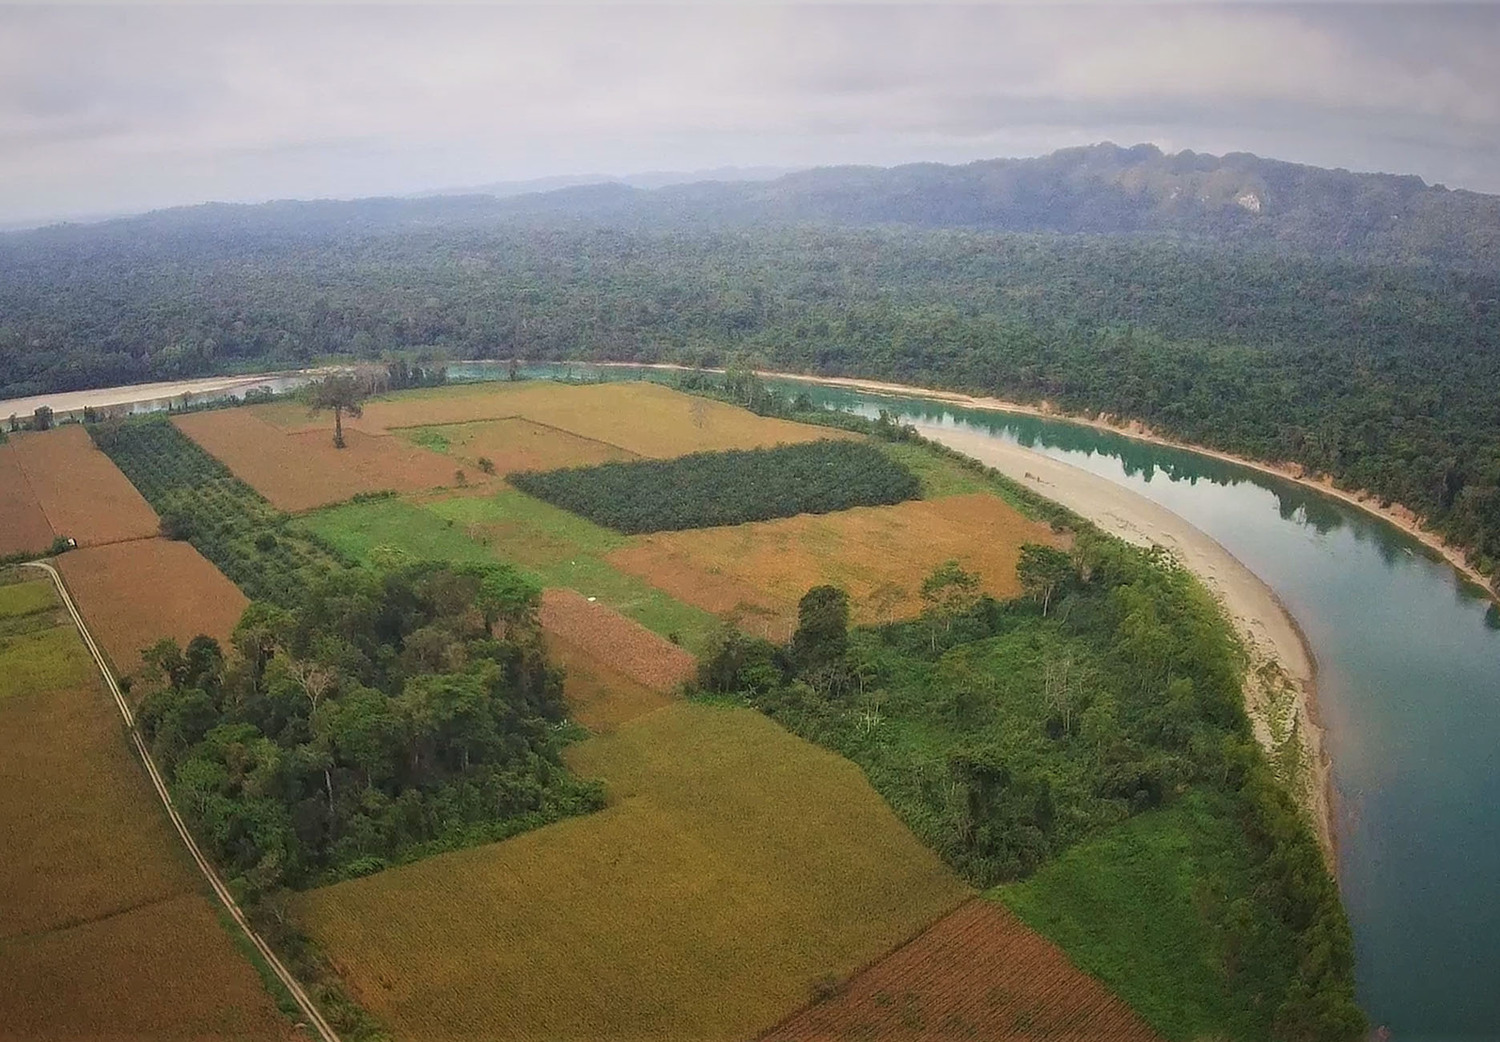 Lacandonon rainforest in southeastern Mexico: The one hectare forest in the middle has tall trees that serve as nesting places for rare macaw parrots.